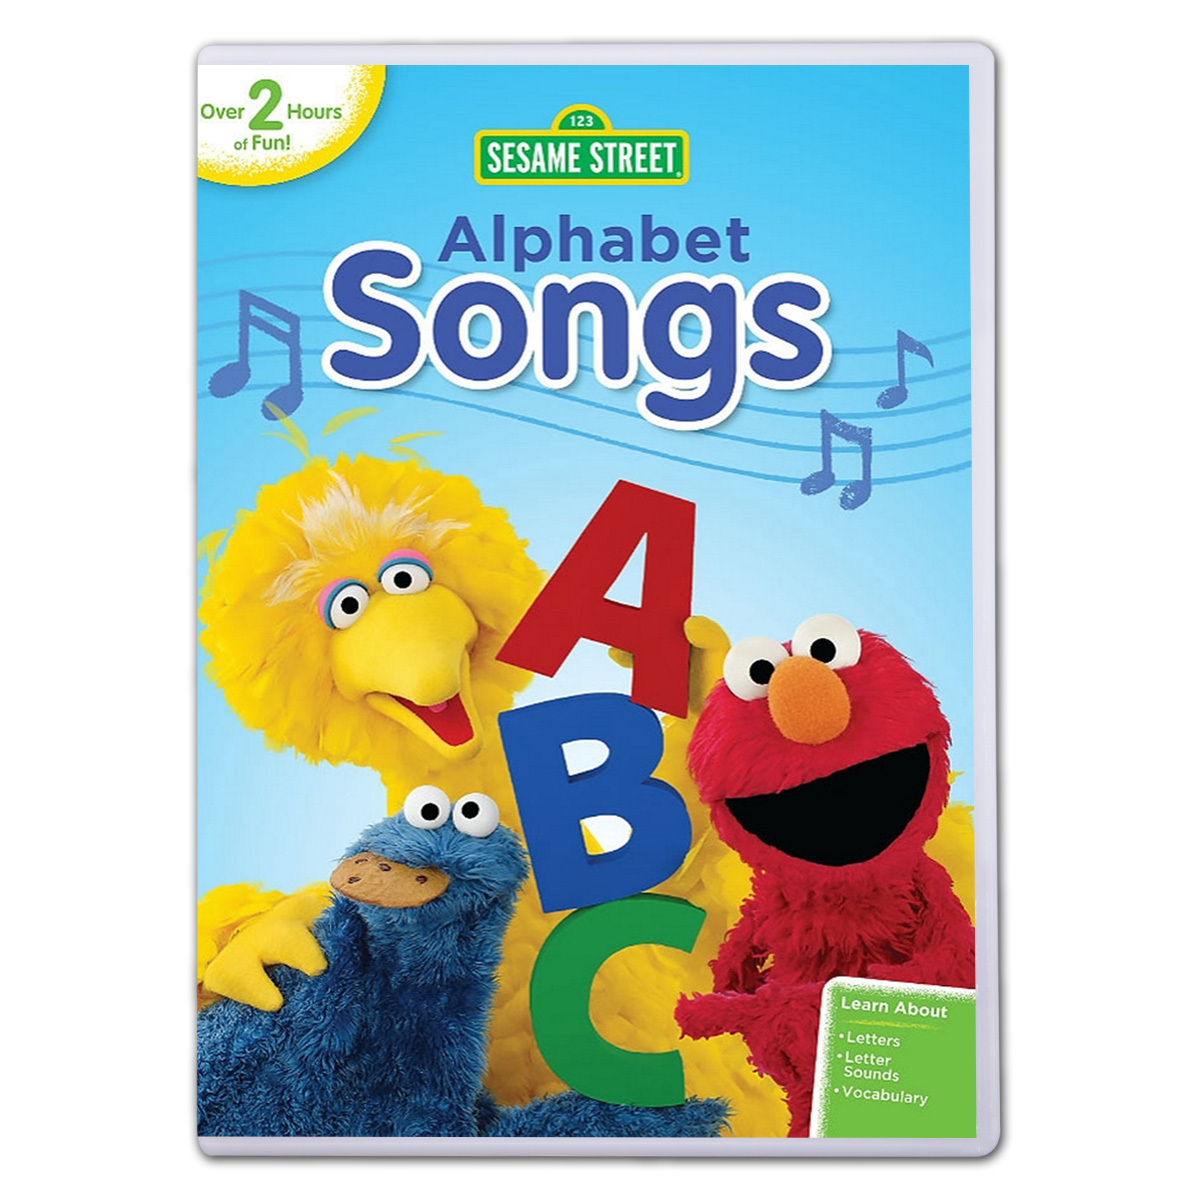 Sesame Street: Alphabet Songs DVD